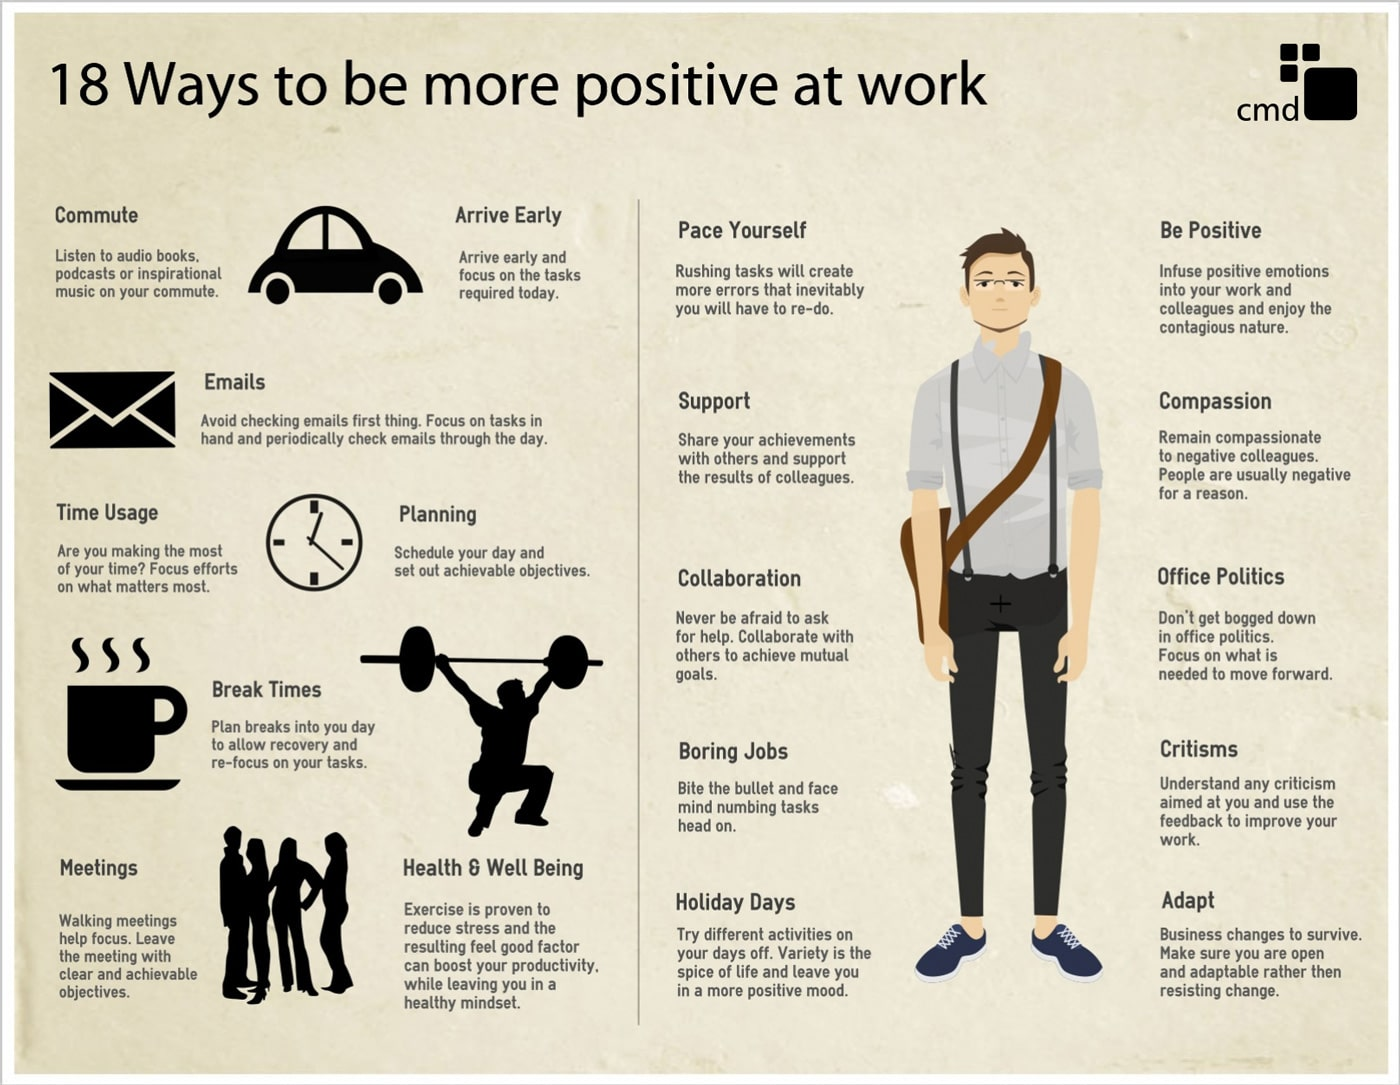 18 More Positive Ways Infographic